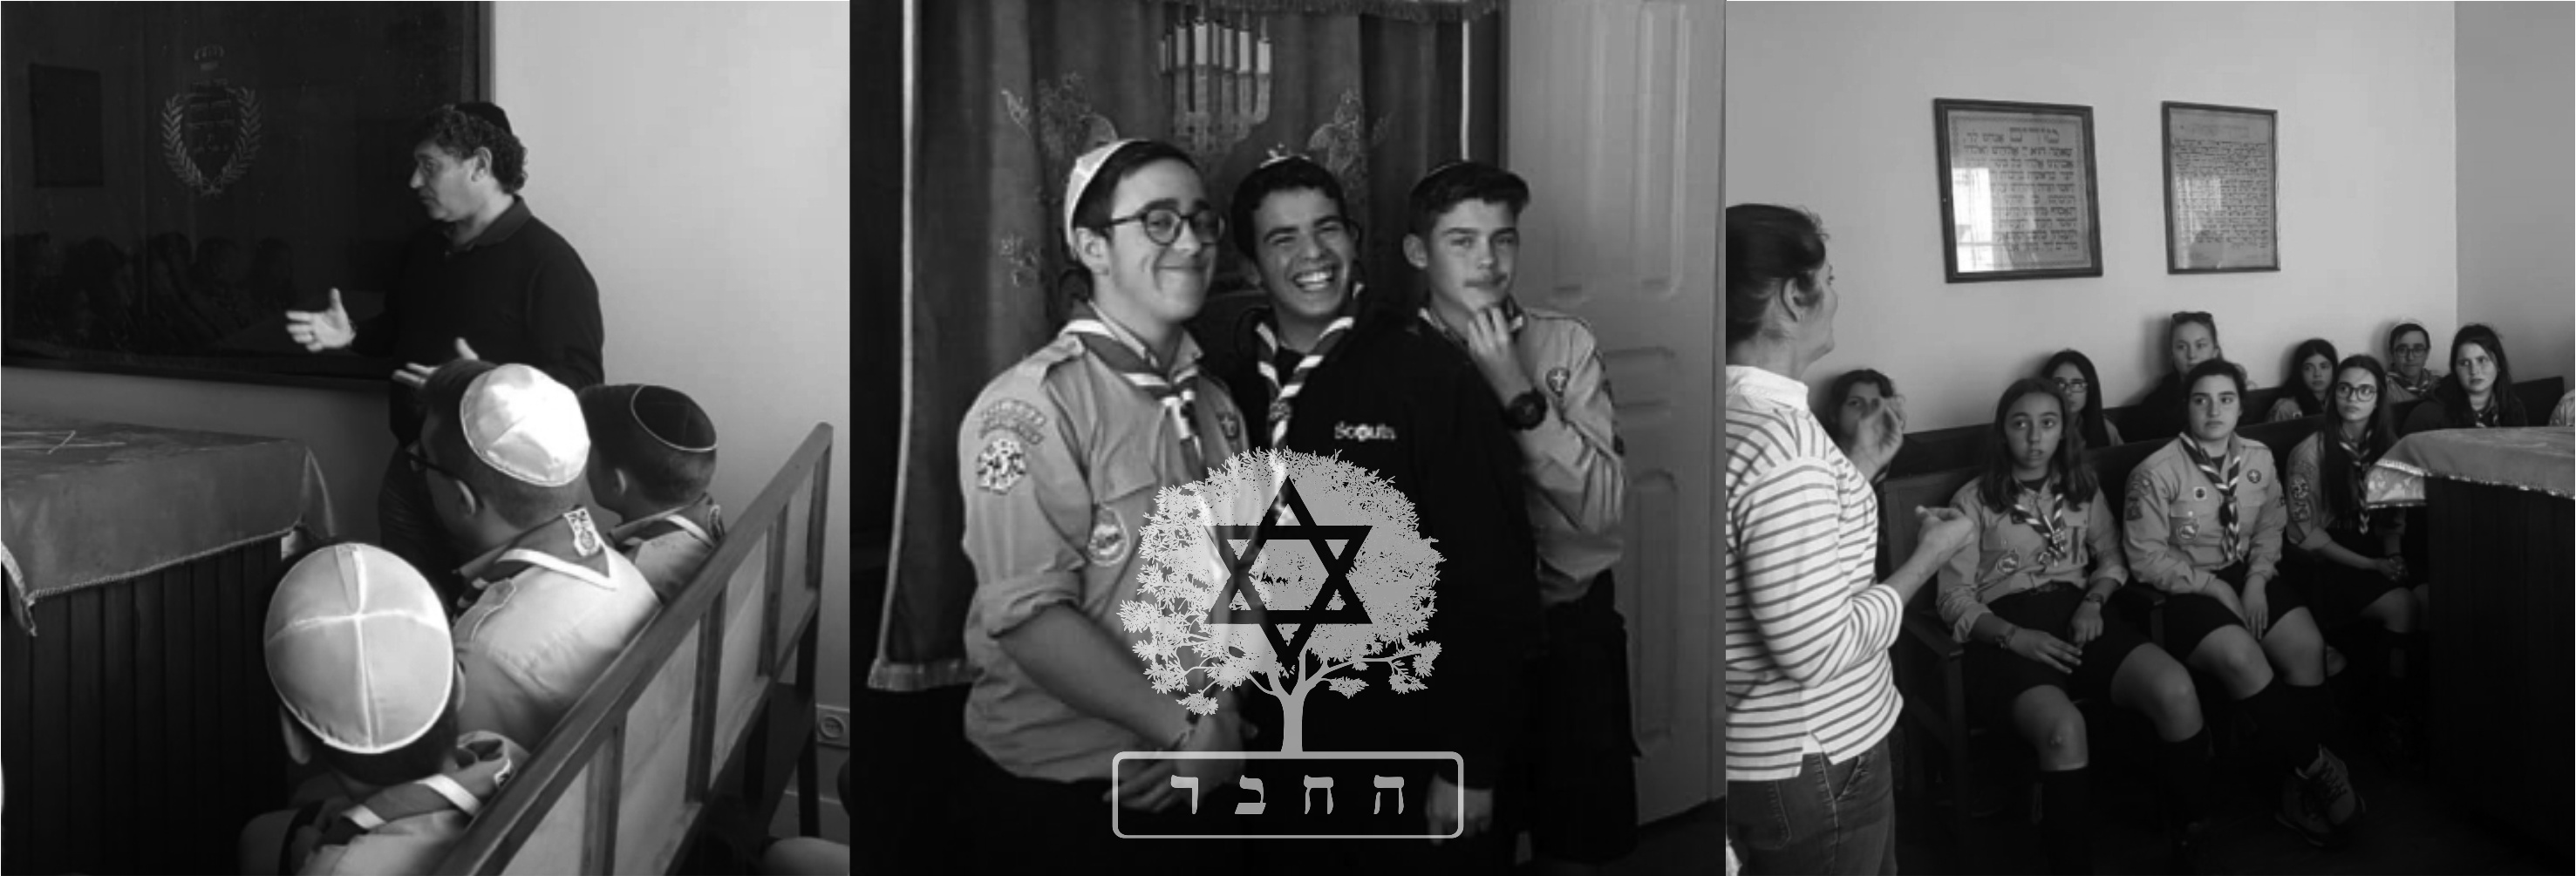 visita esc header - Visit of Scouts to the Ohel Jacob Synagogue